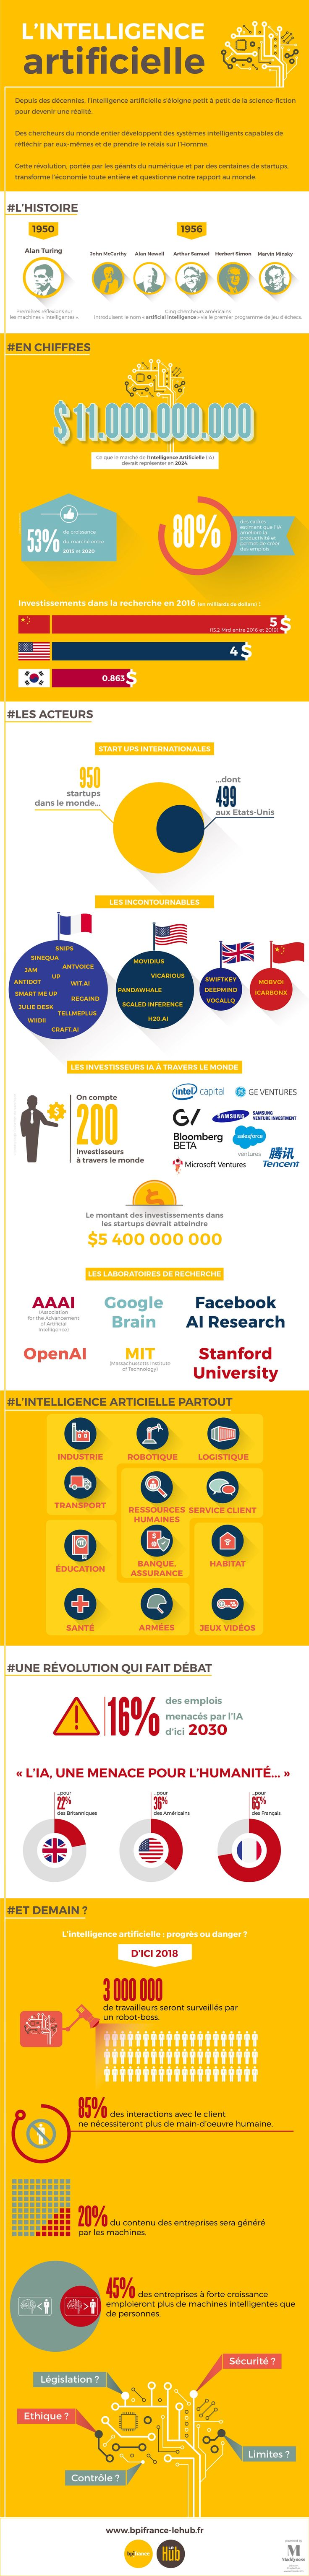 [Infographie] Artificial Intelligence